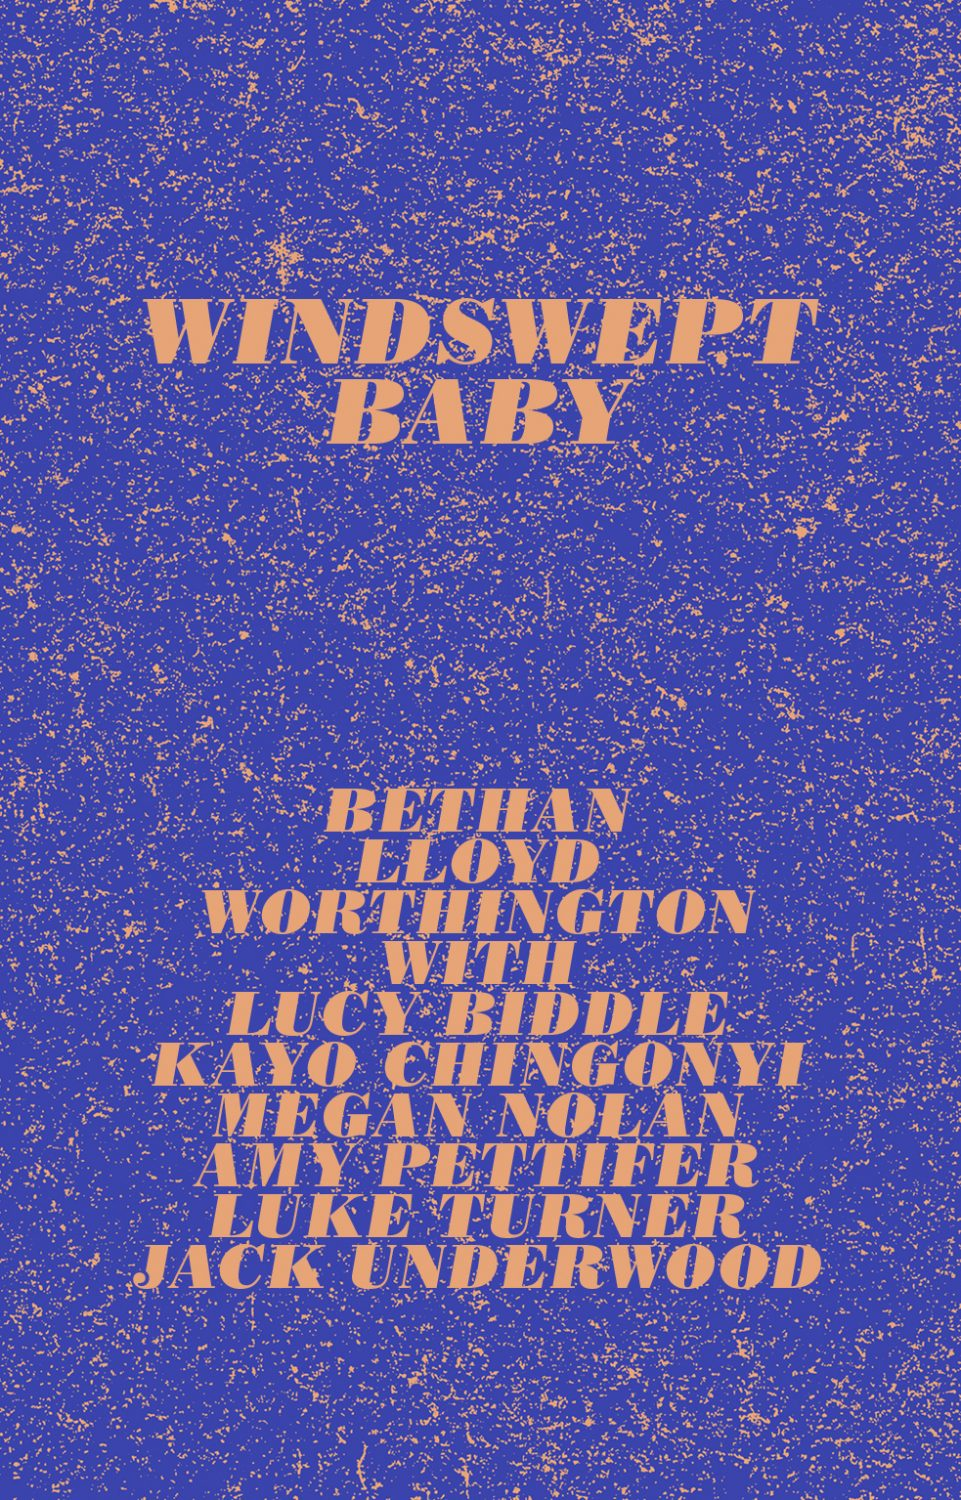 Bethan Lloyd Worthington, Windswept Baby Publication